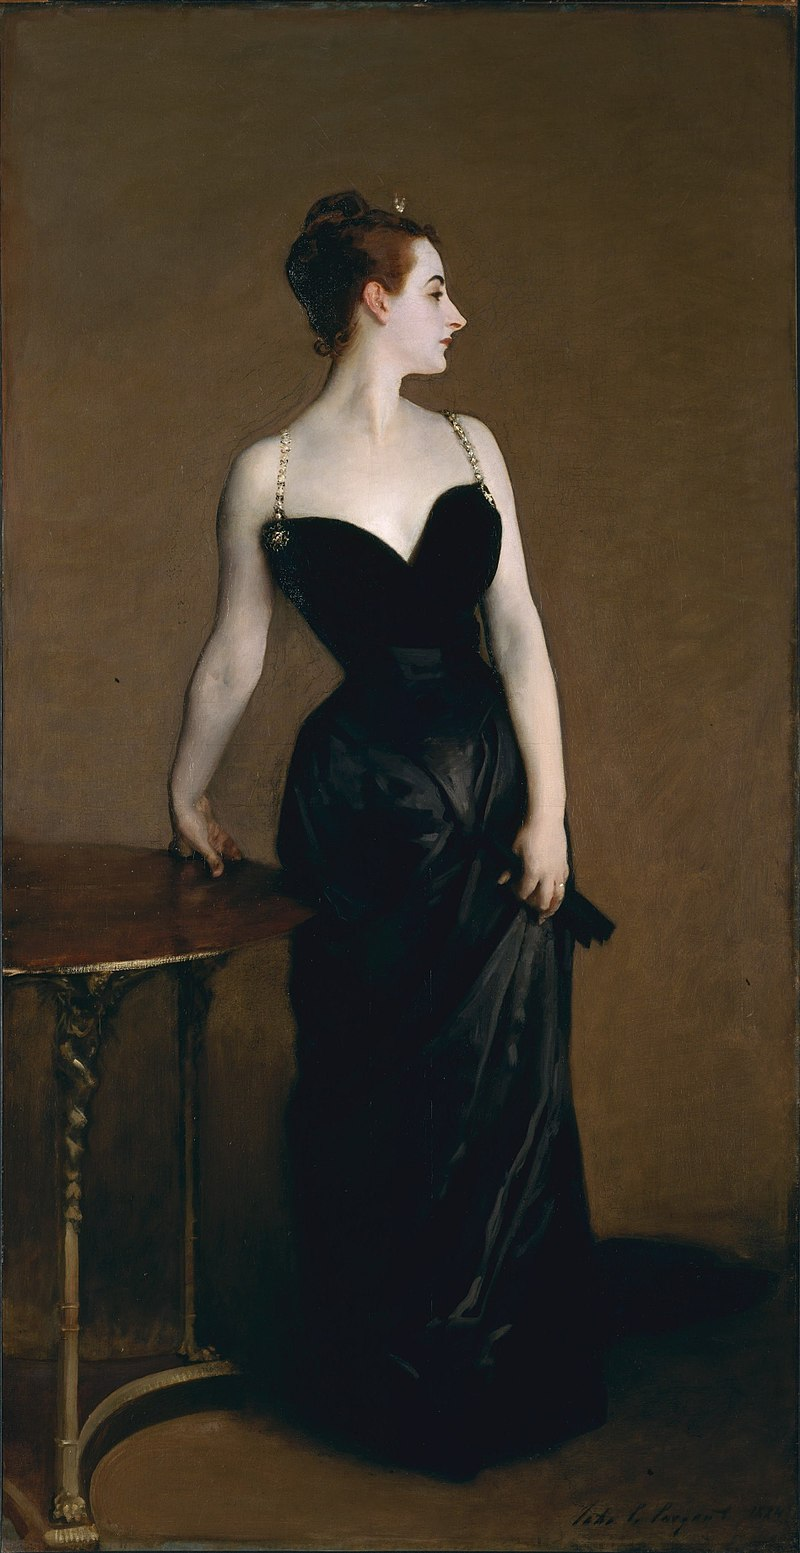 painting of woman in black dress